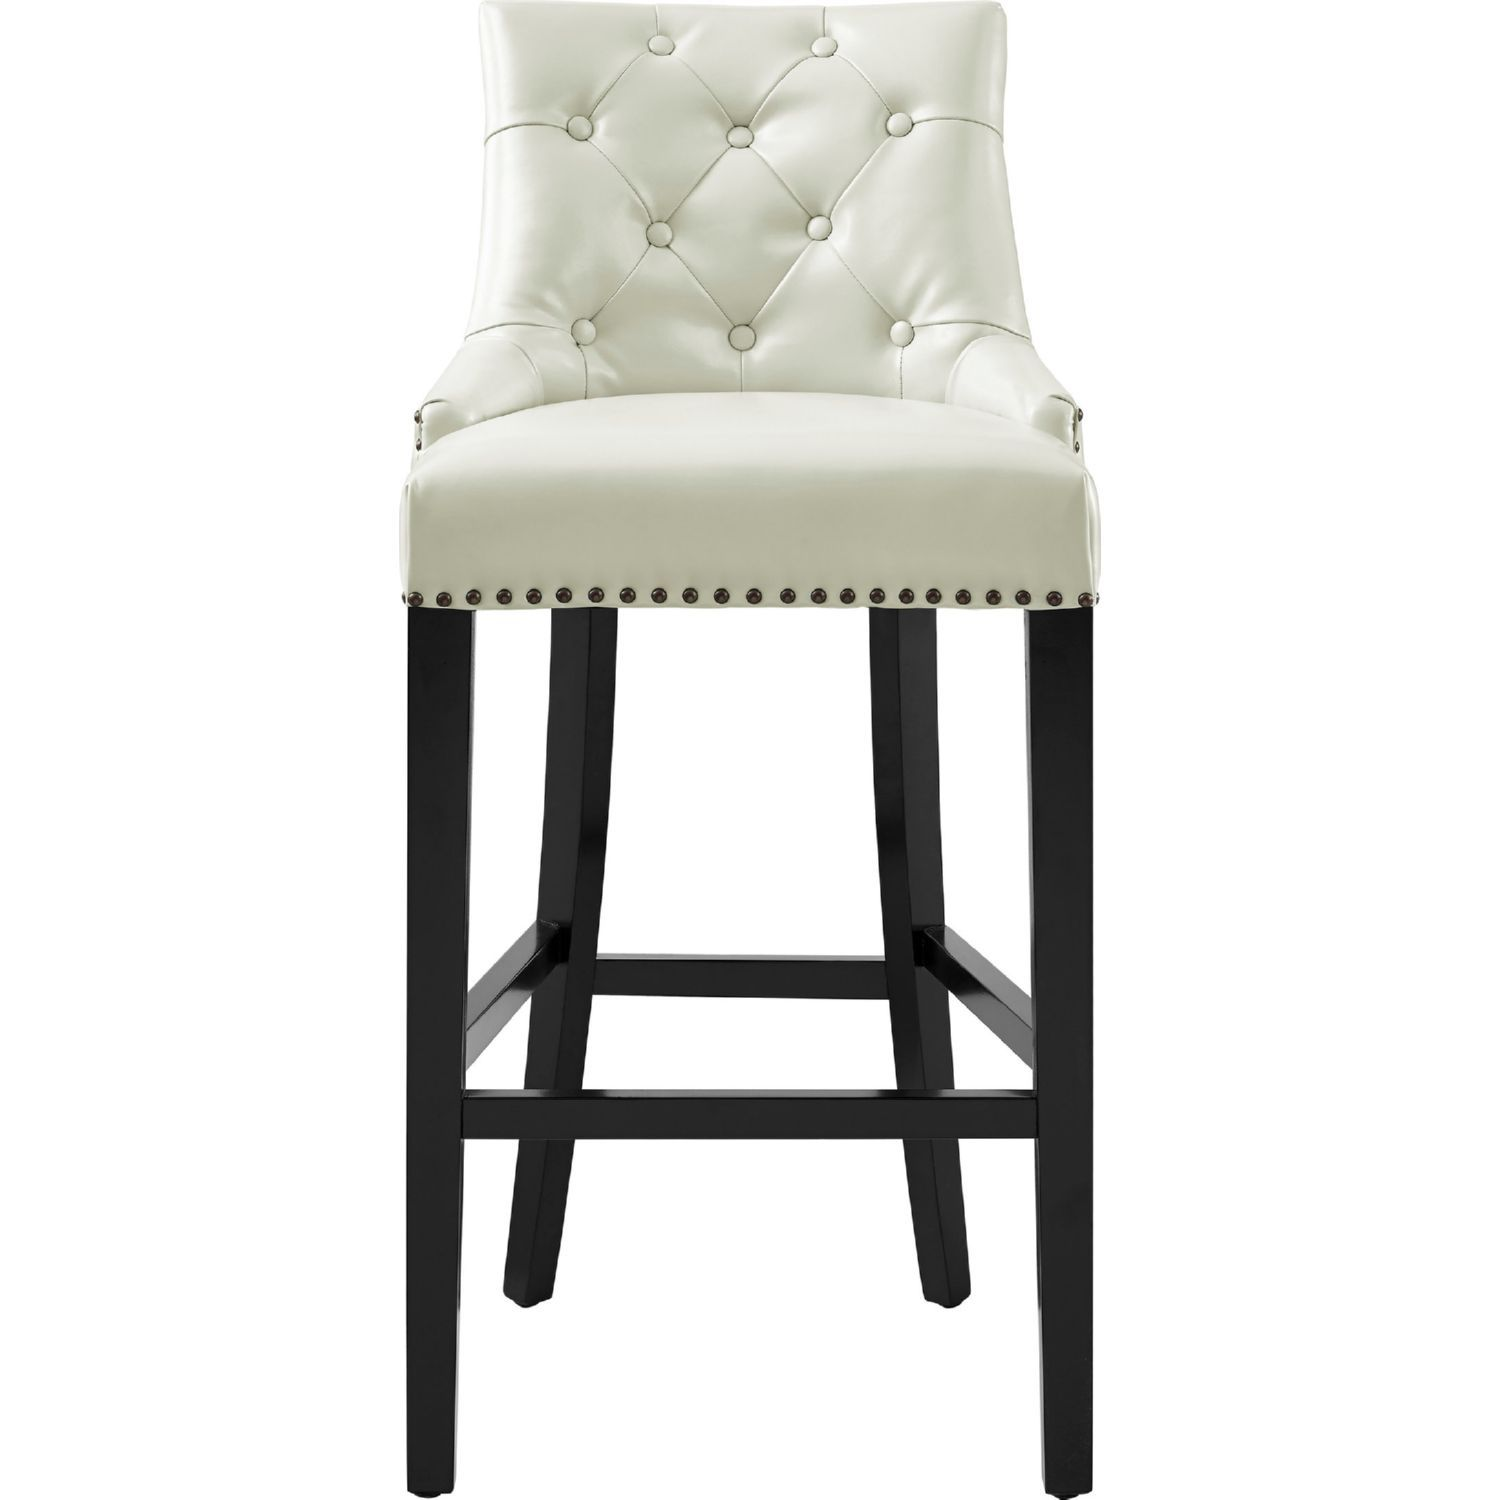 20 Cream Colored Bar Stools Elite Modern Furniture Check More